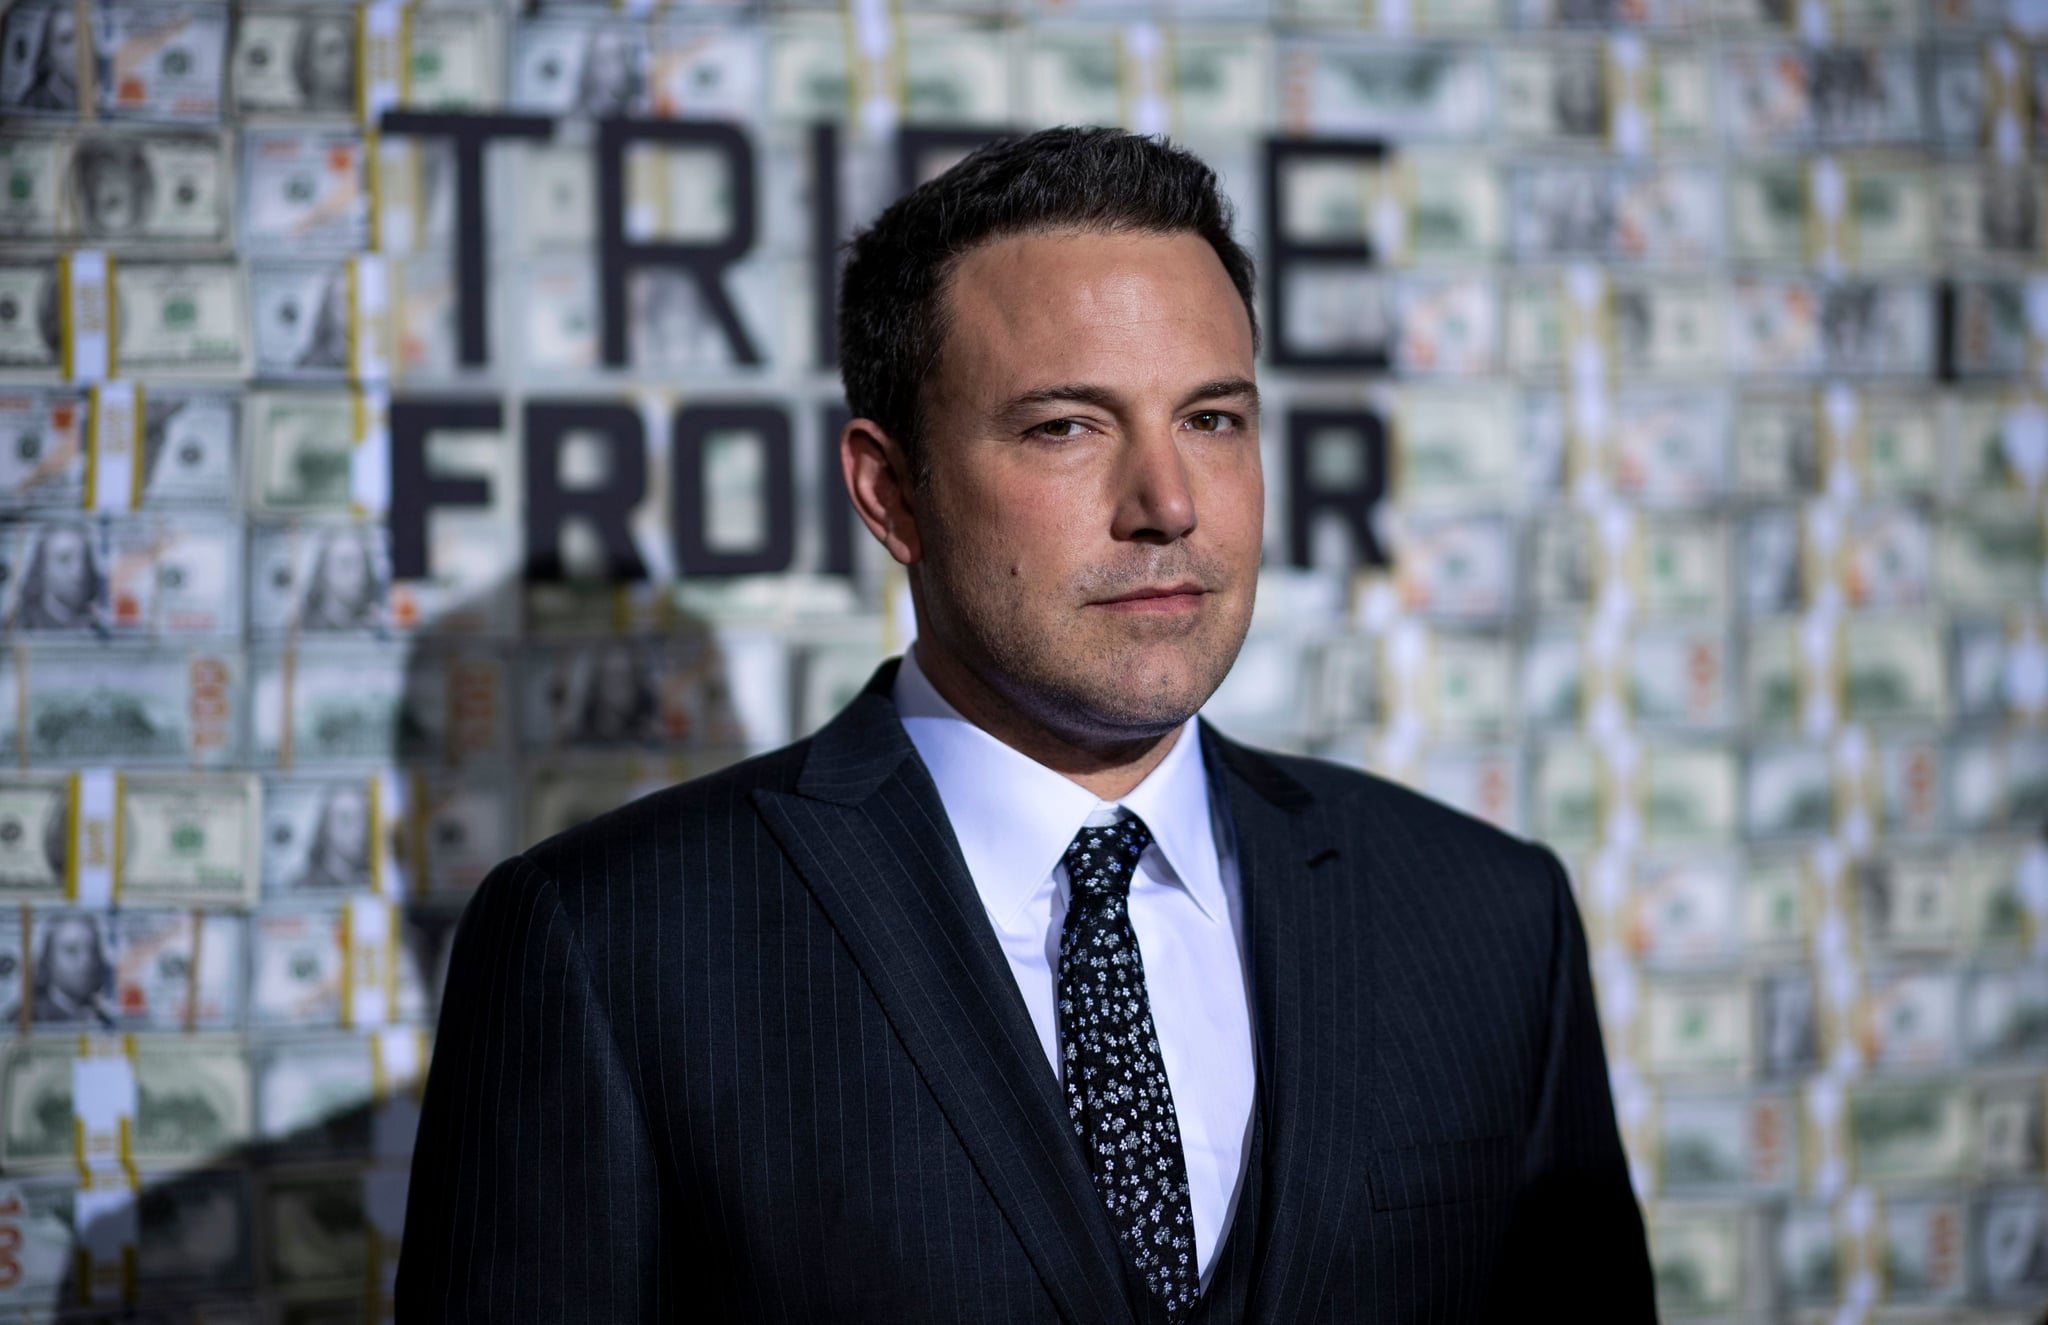 US actor Ben Affleck poses as he arrives for the world premiere of